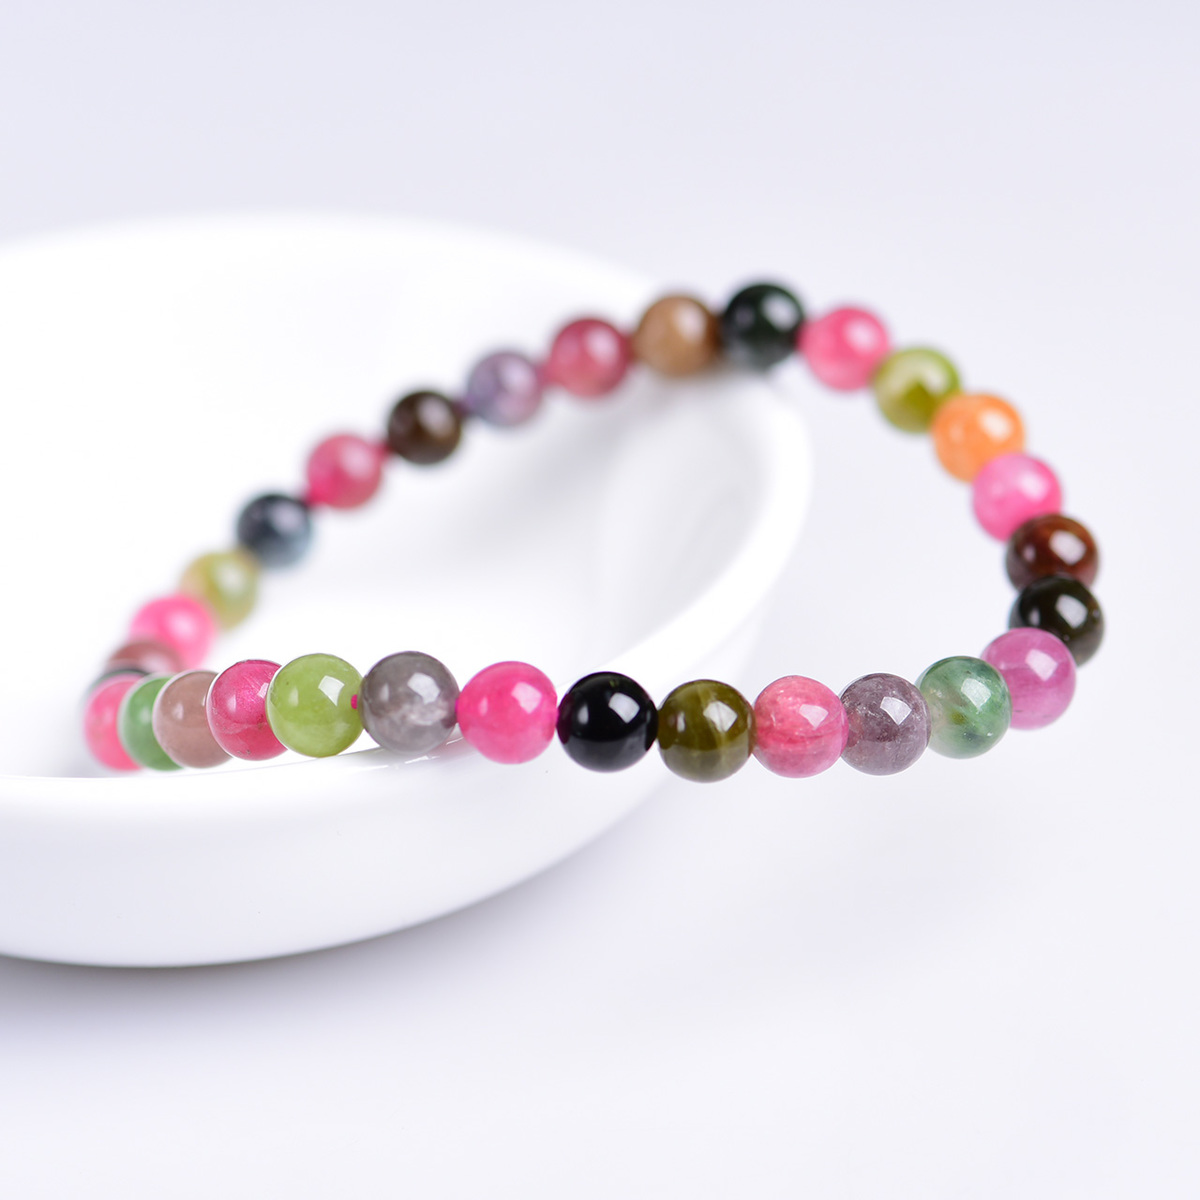 image bracelets noelle of bracelet collections singles img jewelry olivia beaded types